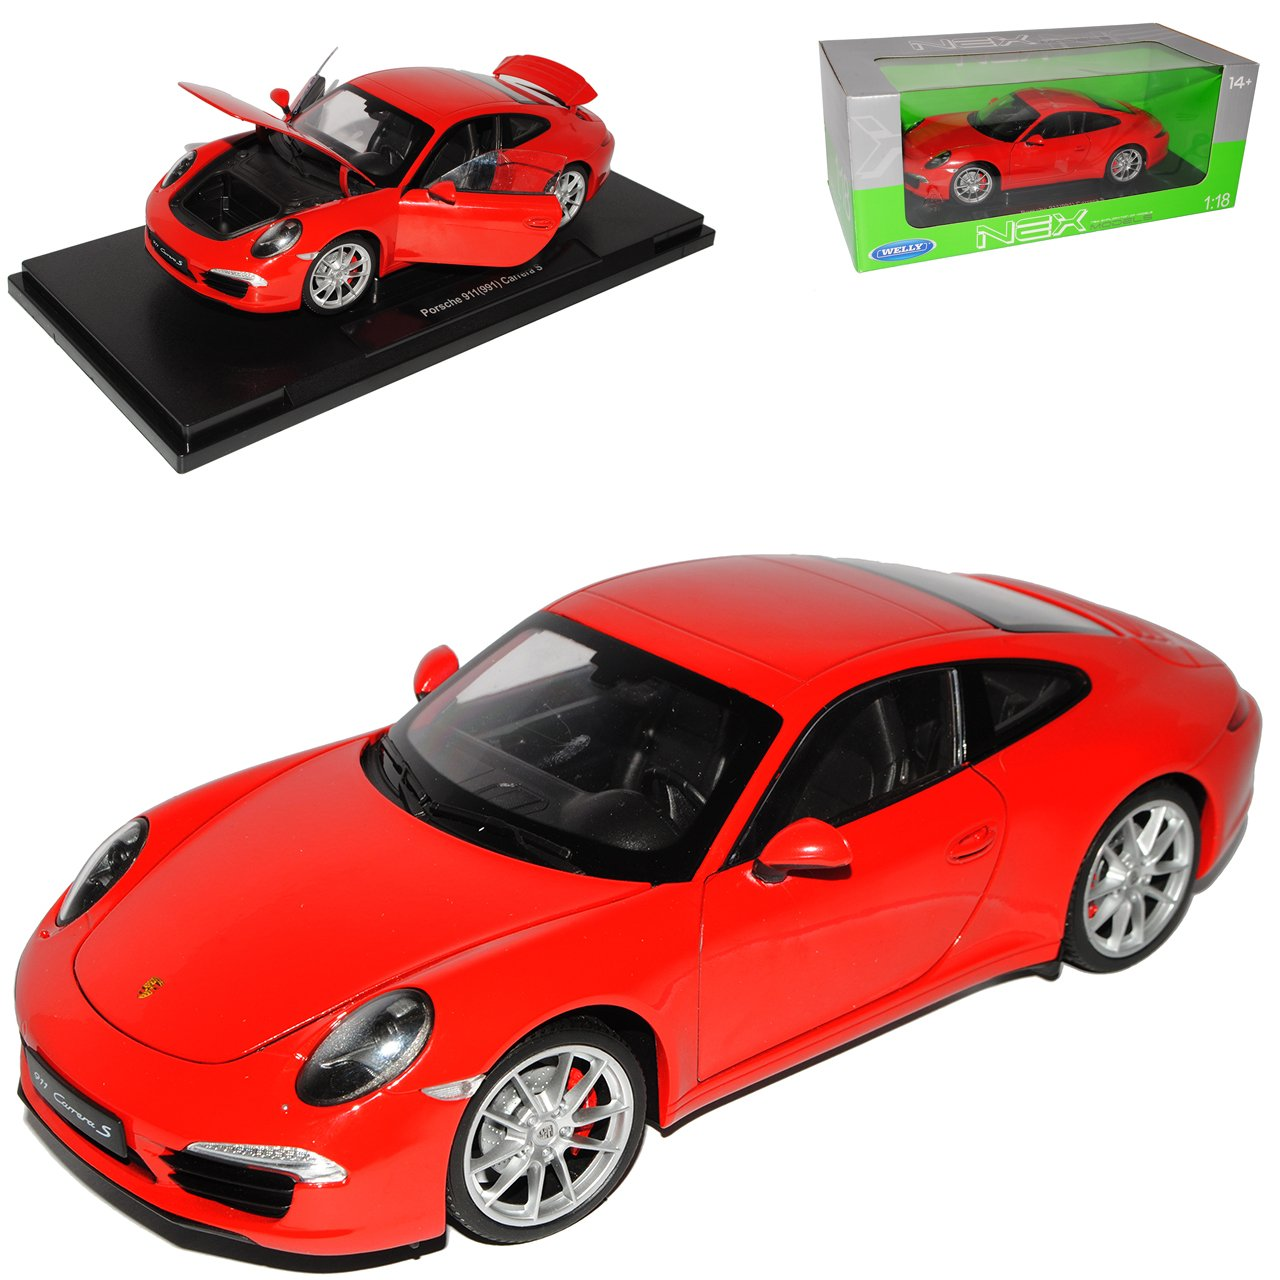 Welly Porsche 911 991 Carrera S Coupe Rot Ab 2012 1/18 Modell Auto